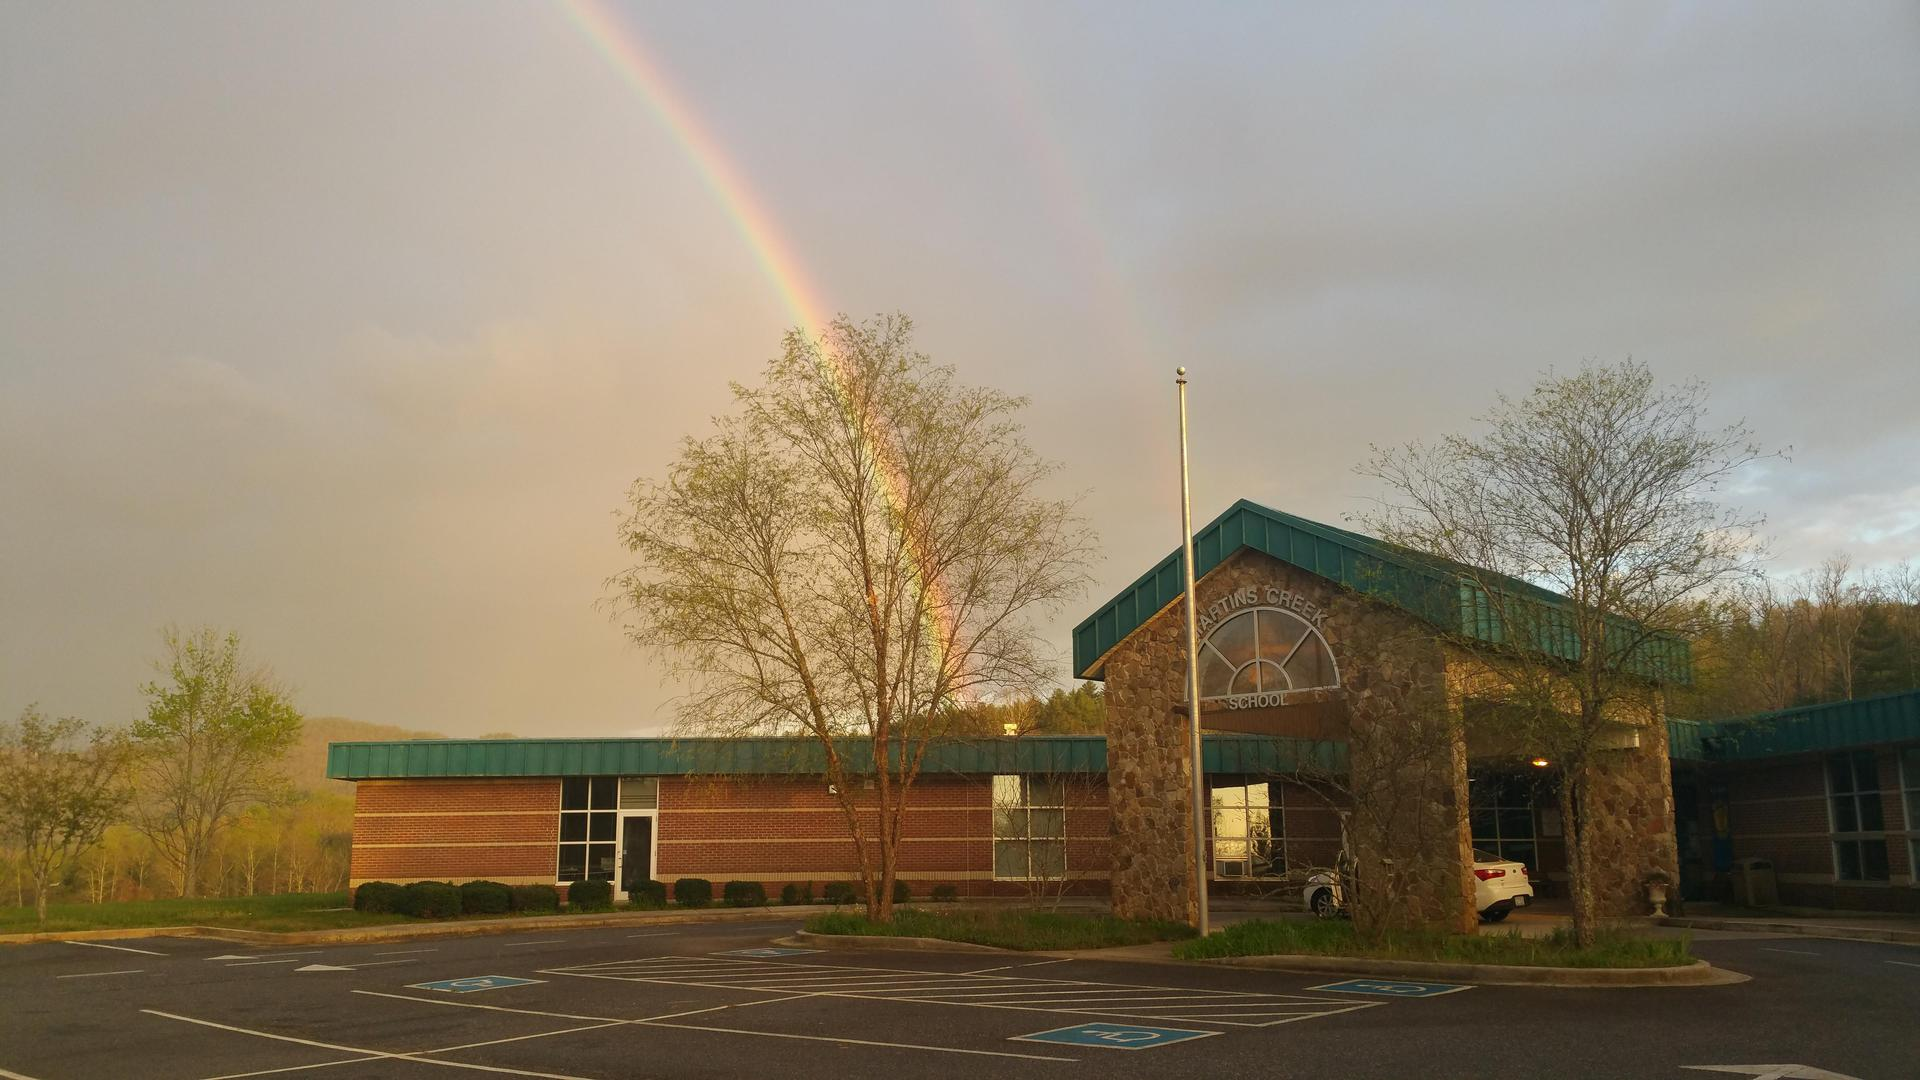 Martins Creek School, front view with rainbow in sky